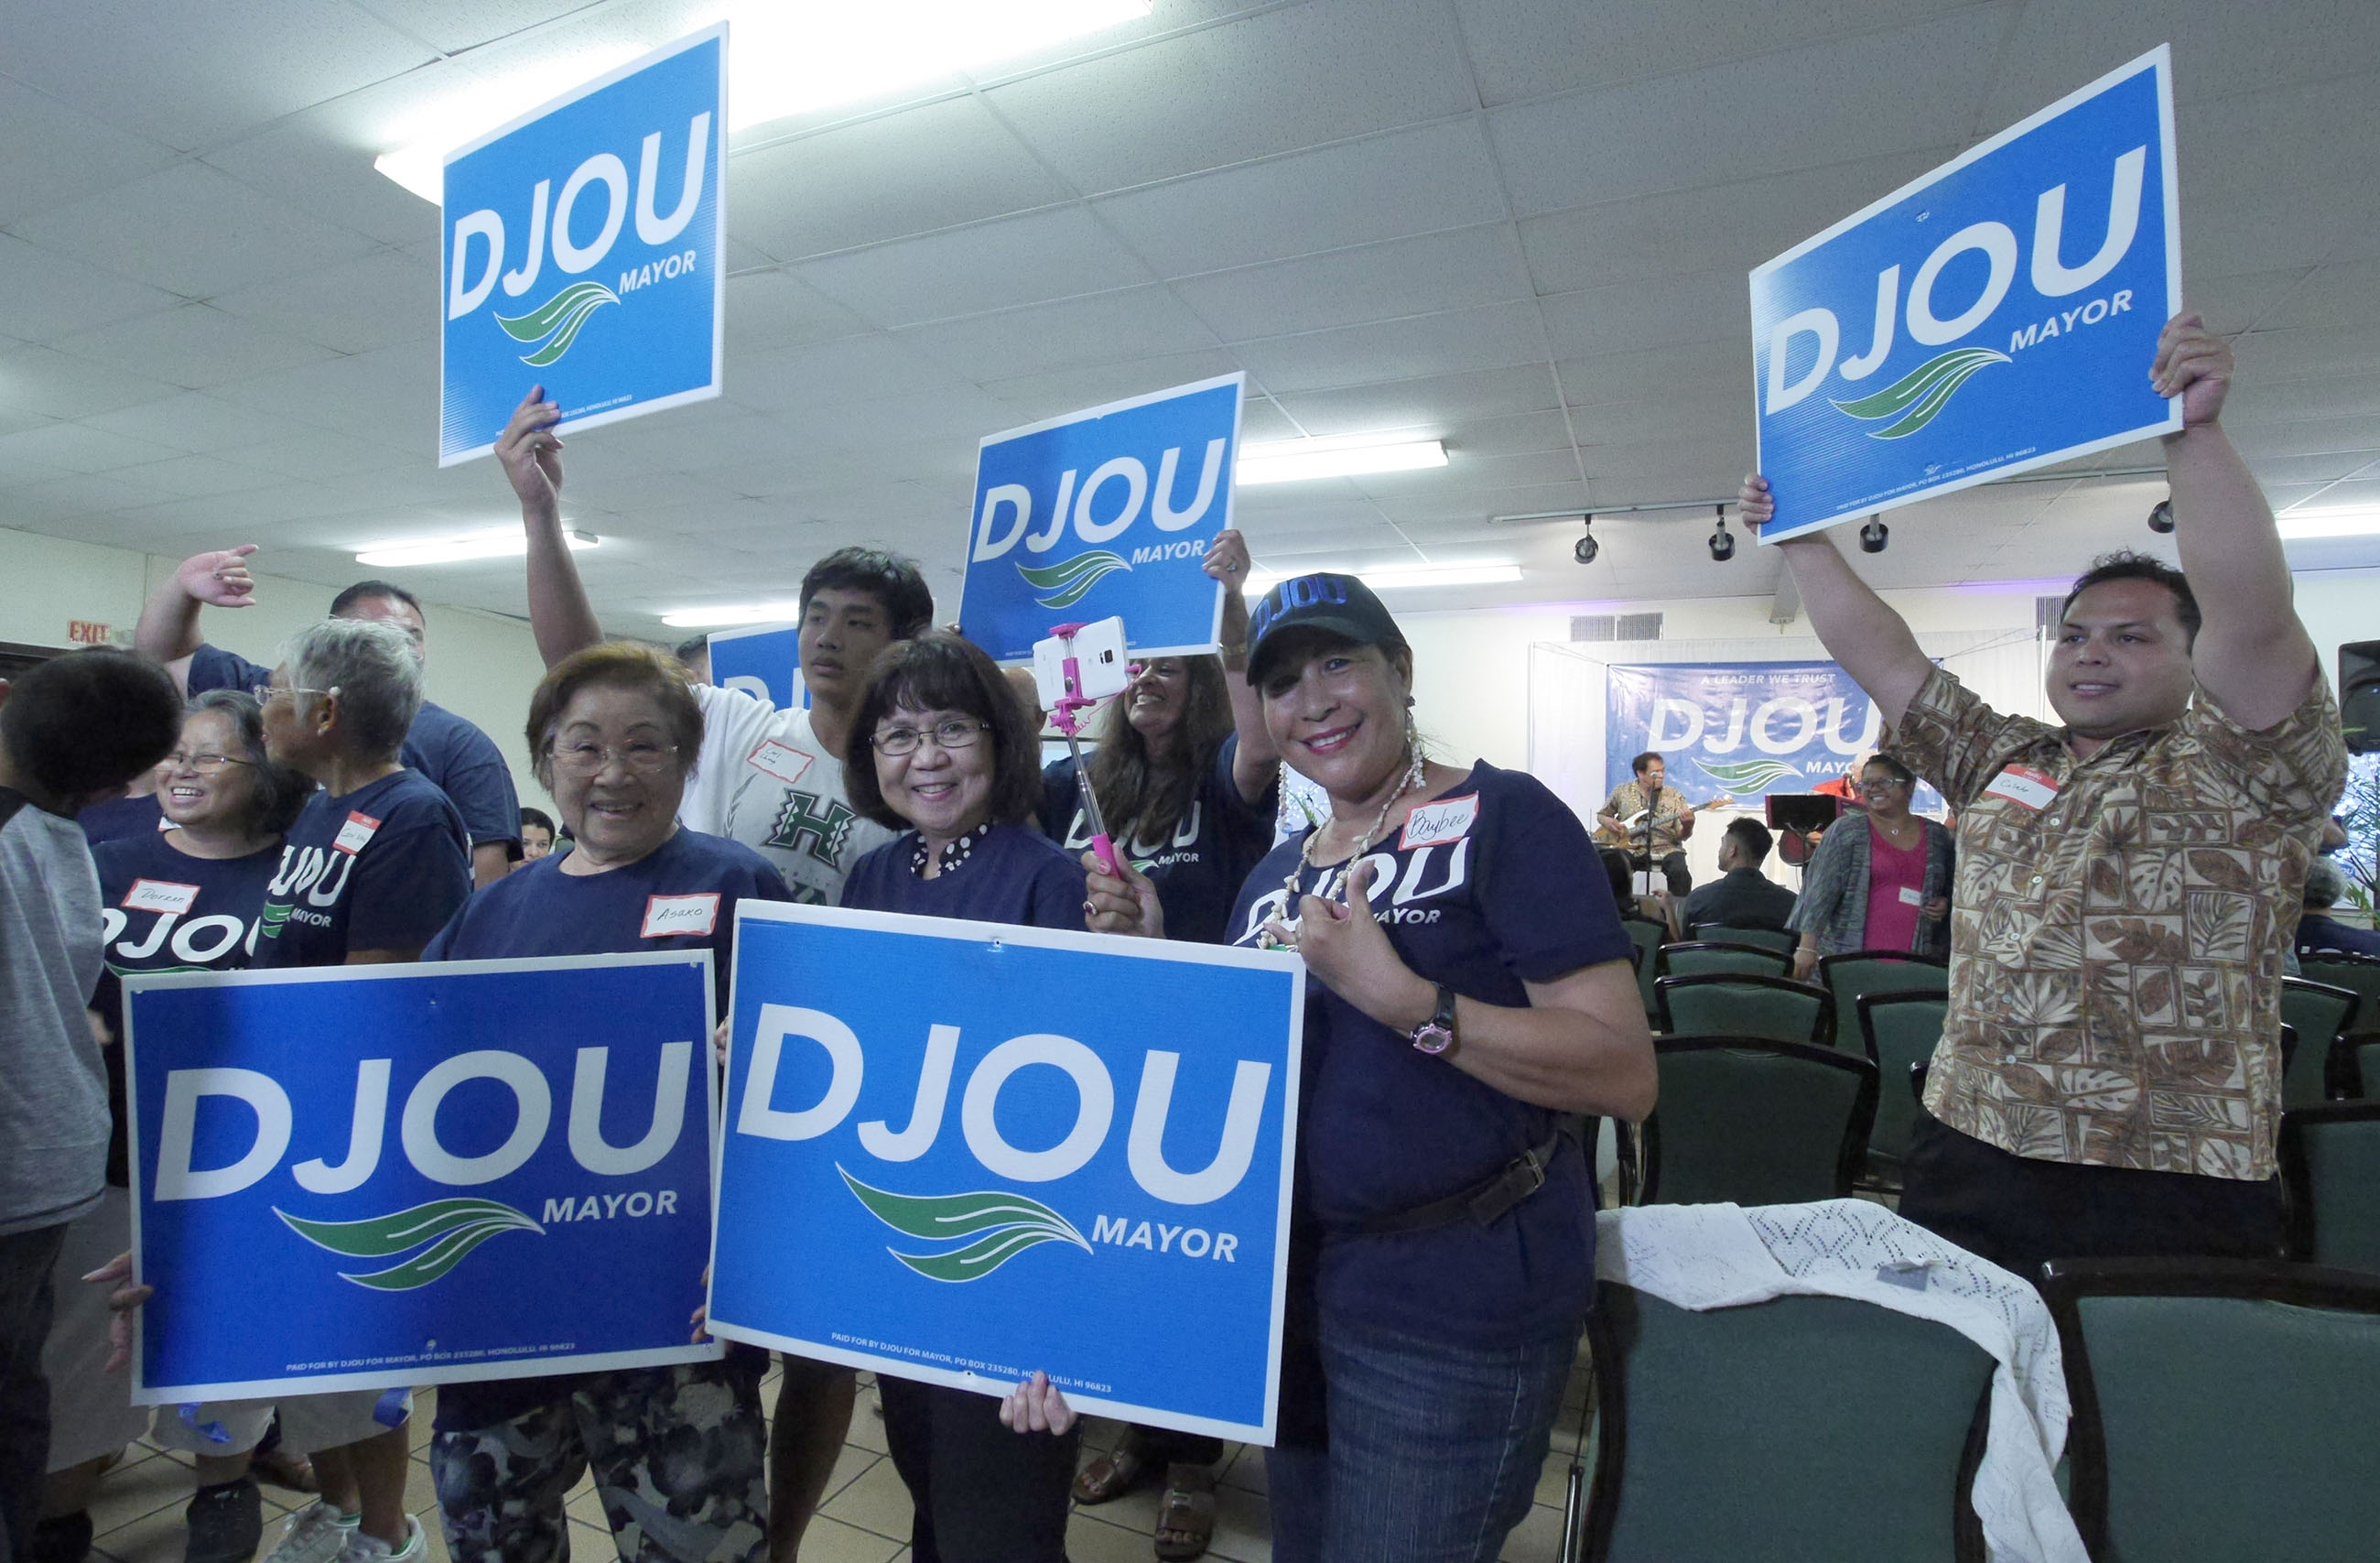 <p>The race was close all night, and Charles Djou supporters also celebrated early returns. (Ronen Zilberman/Civil Beat)</p>